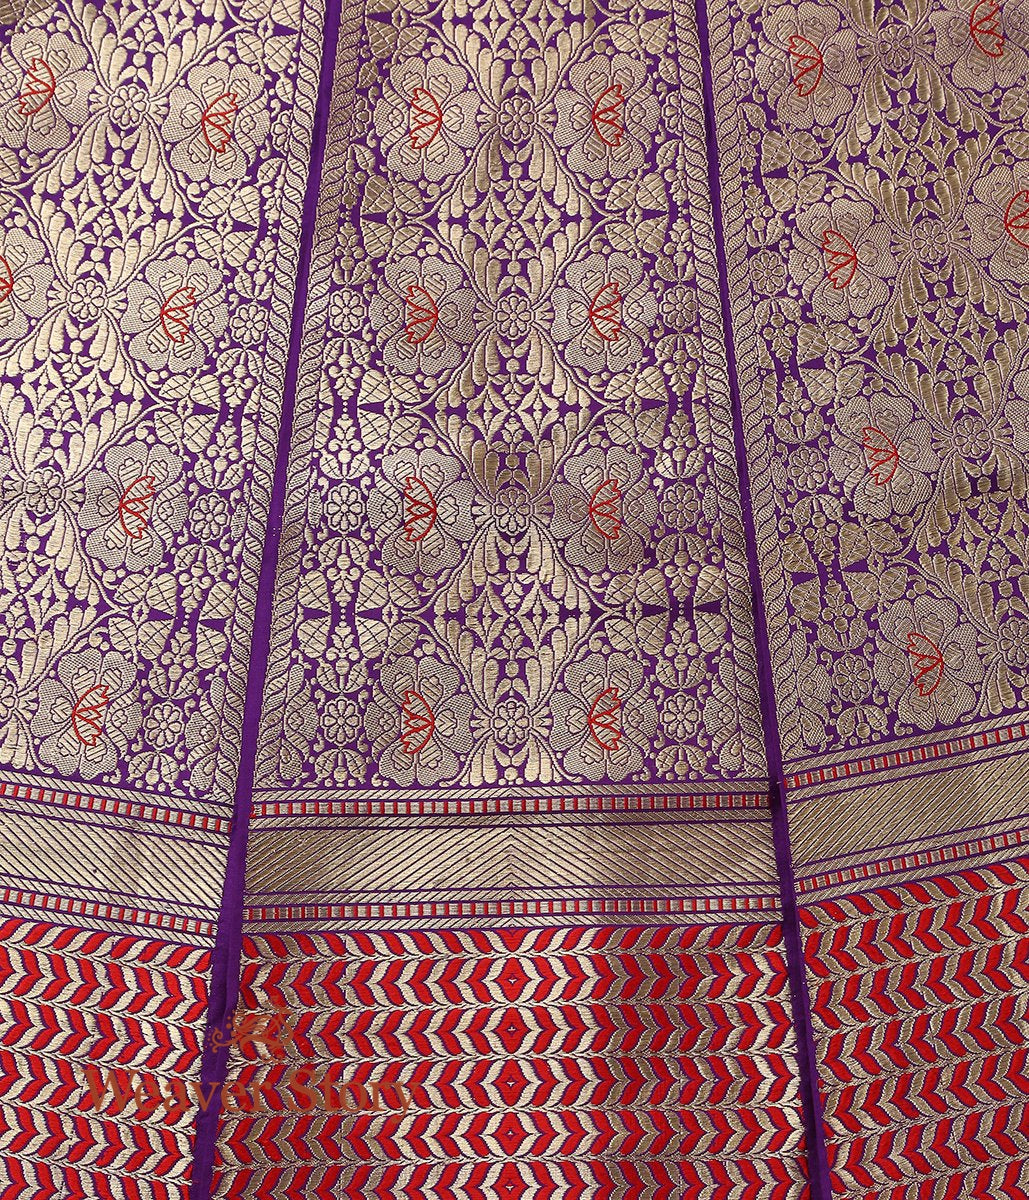 Handwoven Purple Banarasi Lehenga with Meenakari